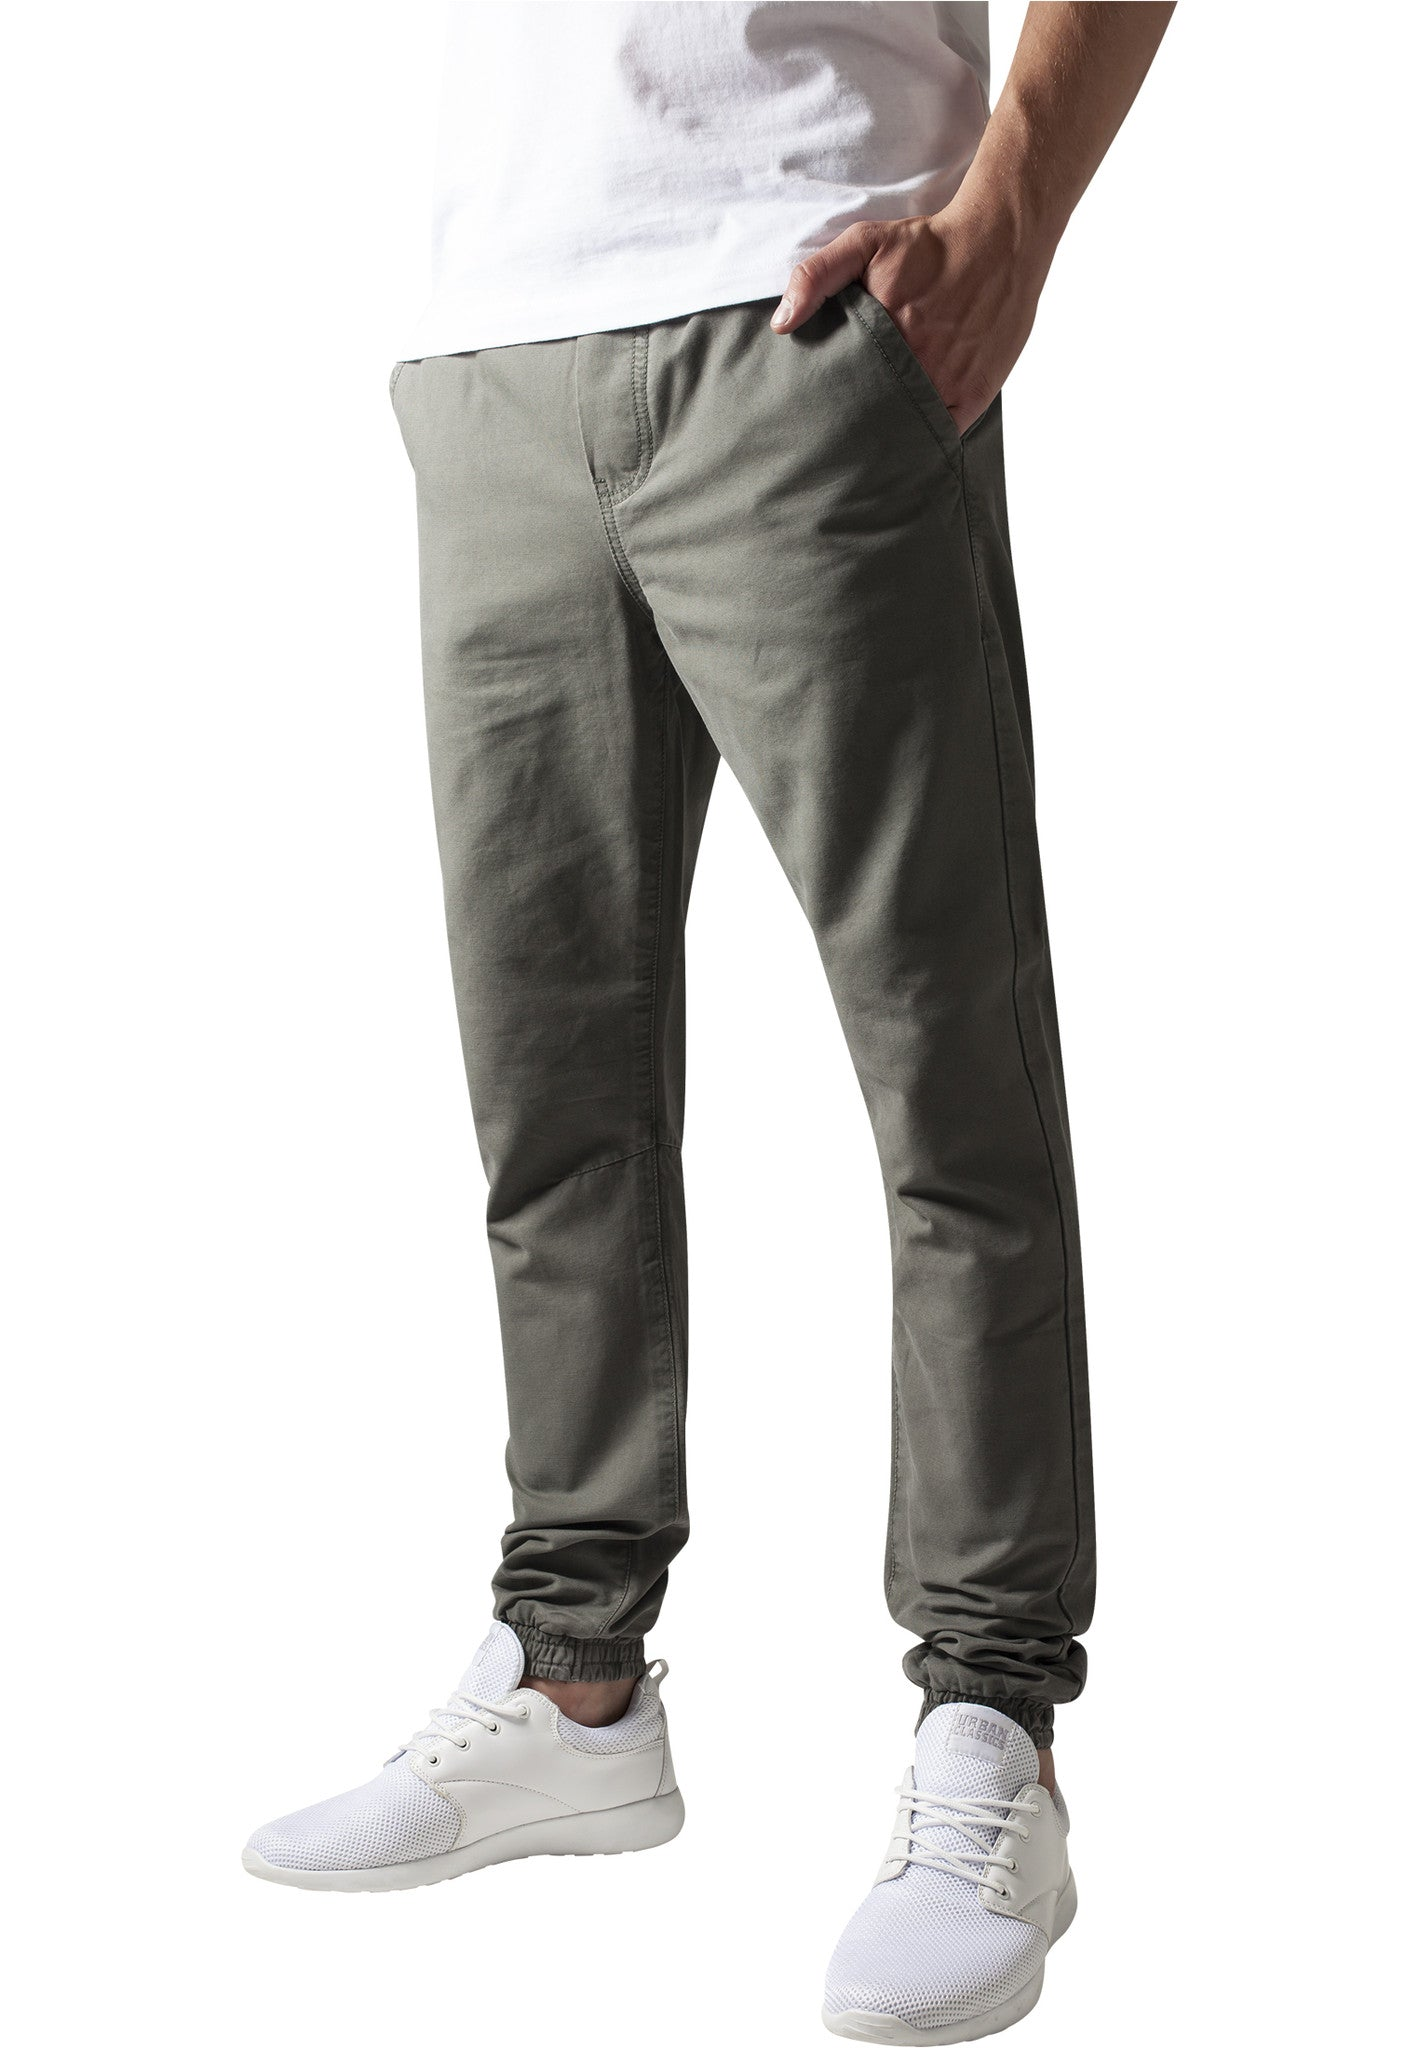 Washed Canvas Jogging Pants TB1434 Green